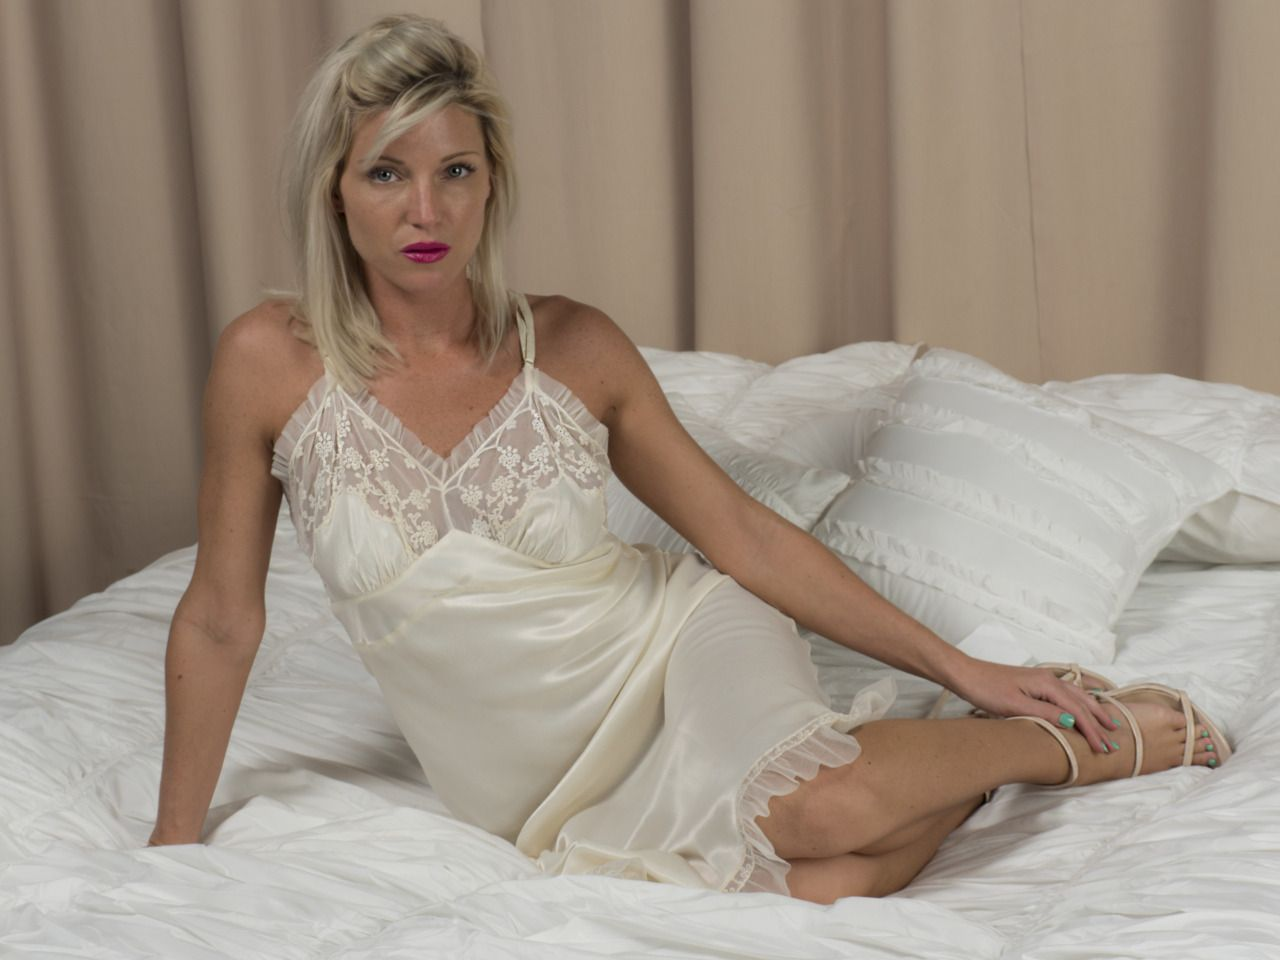 Mature women in nightgowns